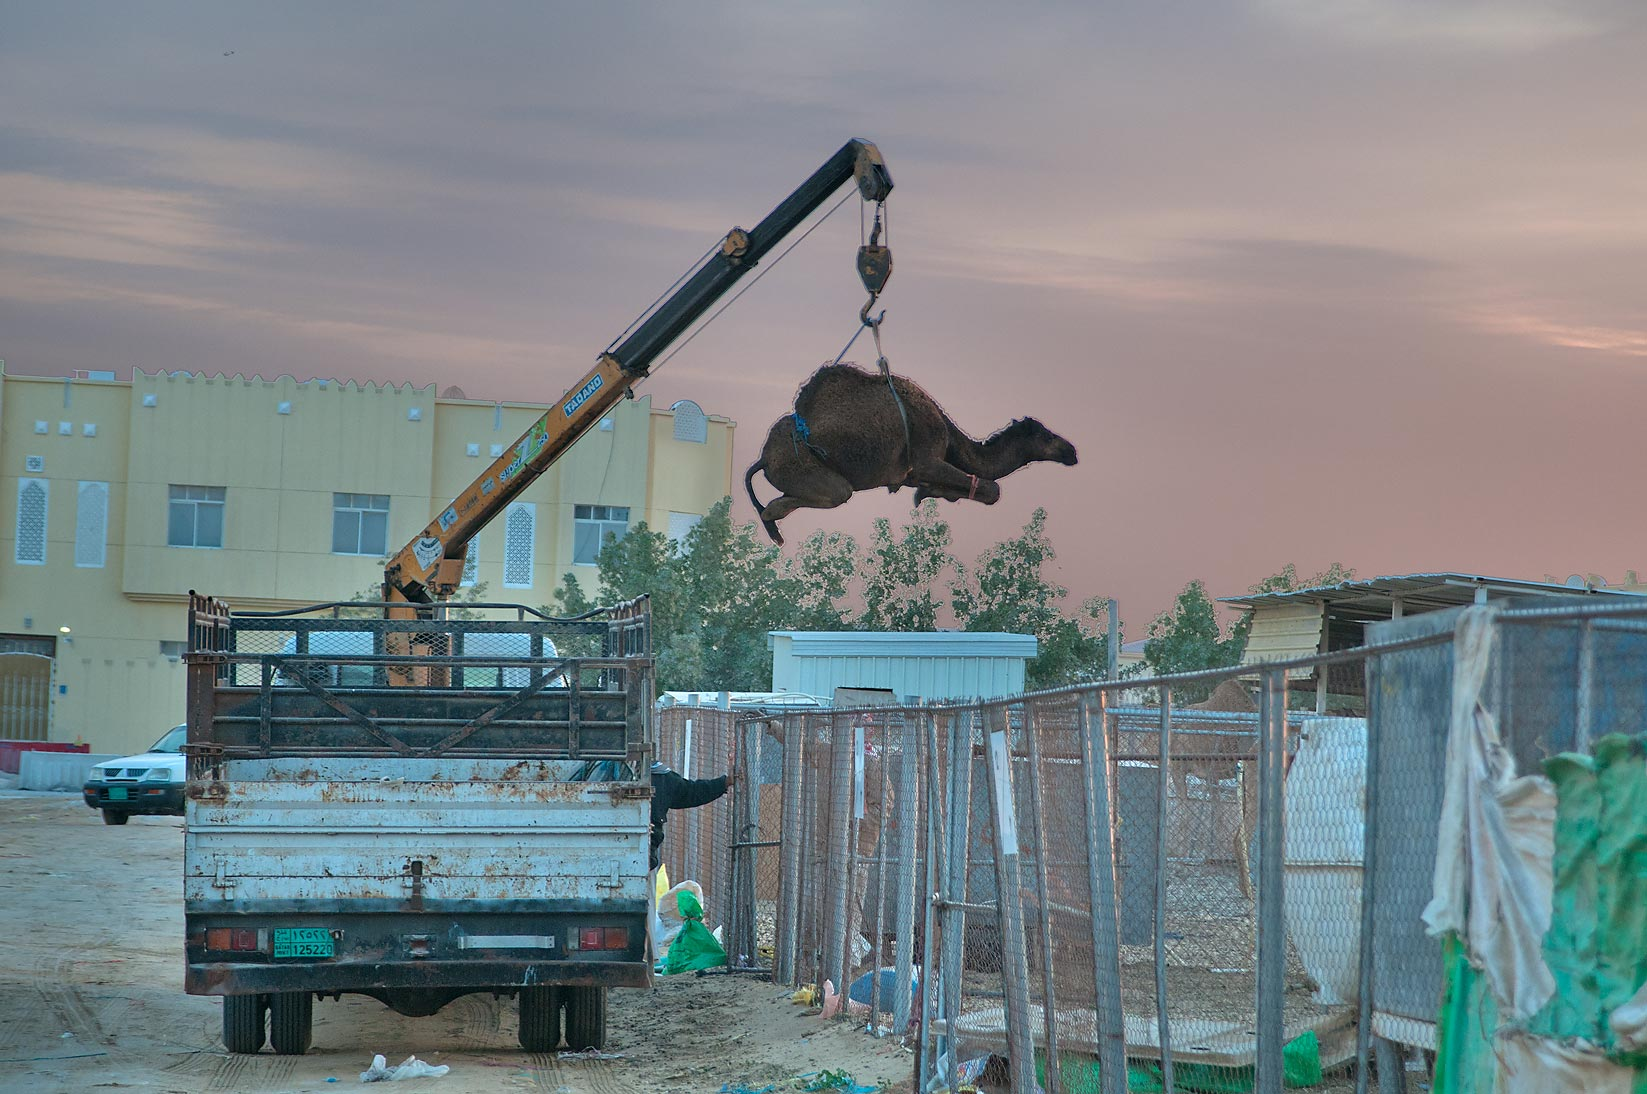 Lifting a camel by crane in Camel Market (Souq) at sunrise. Doha, Qatar